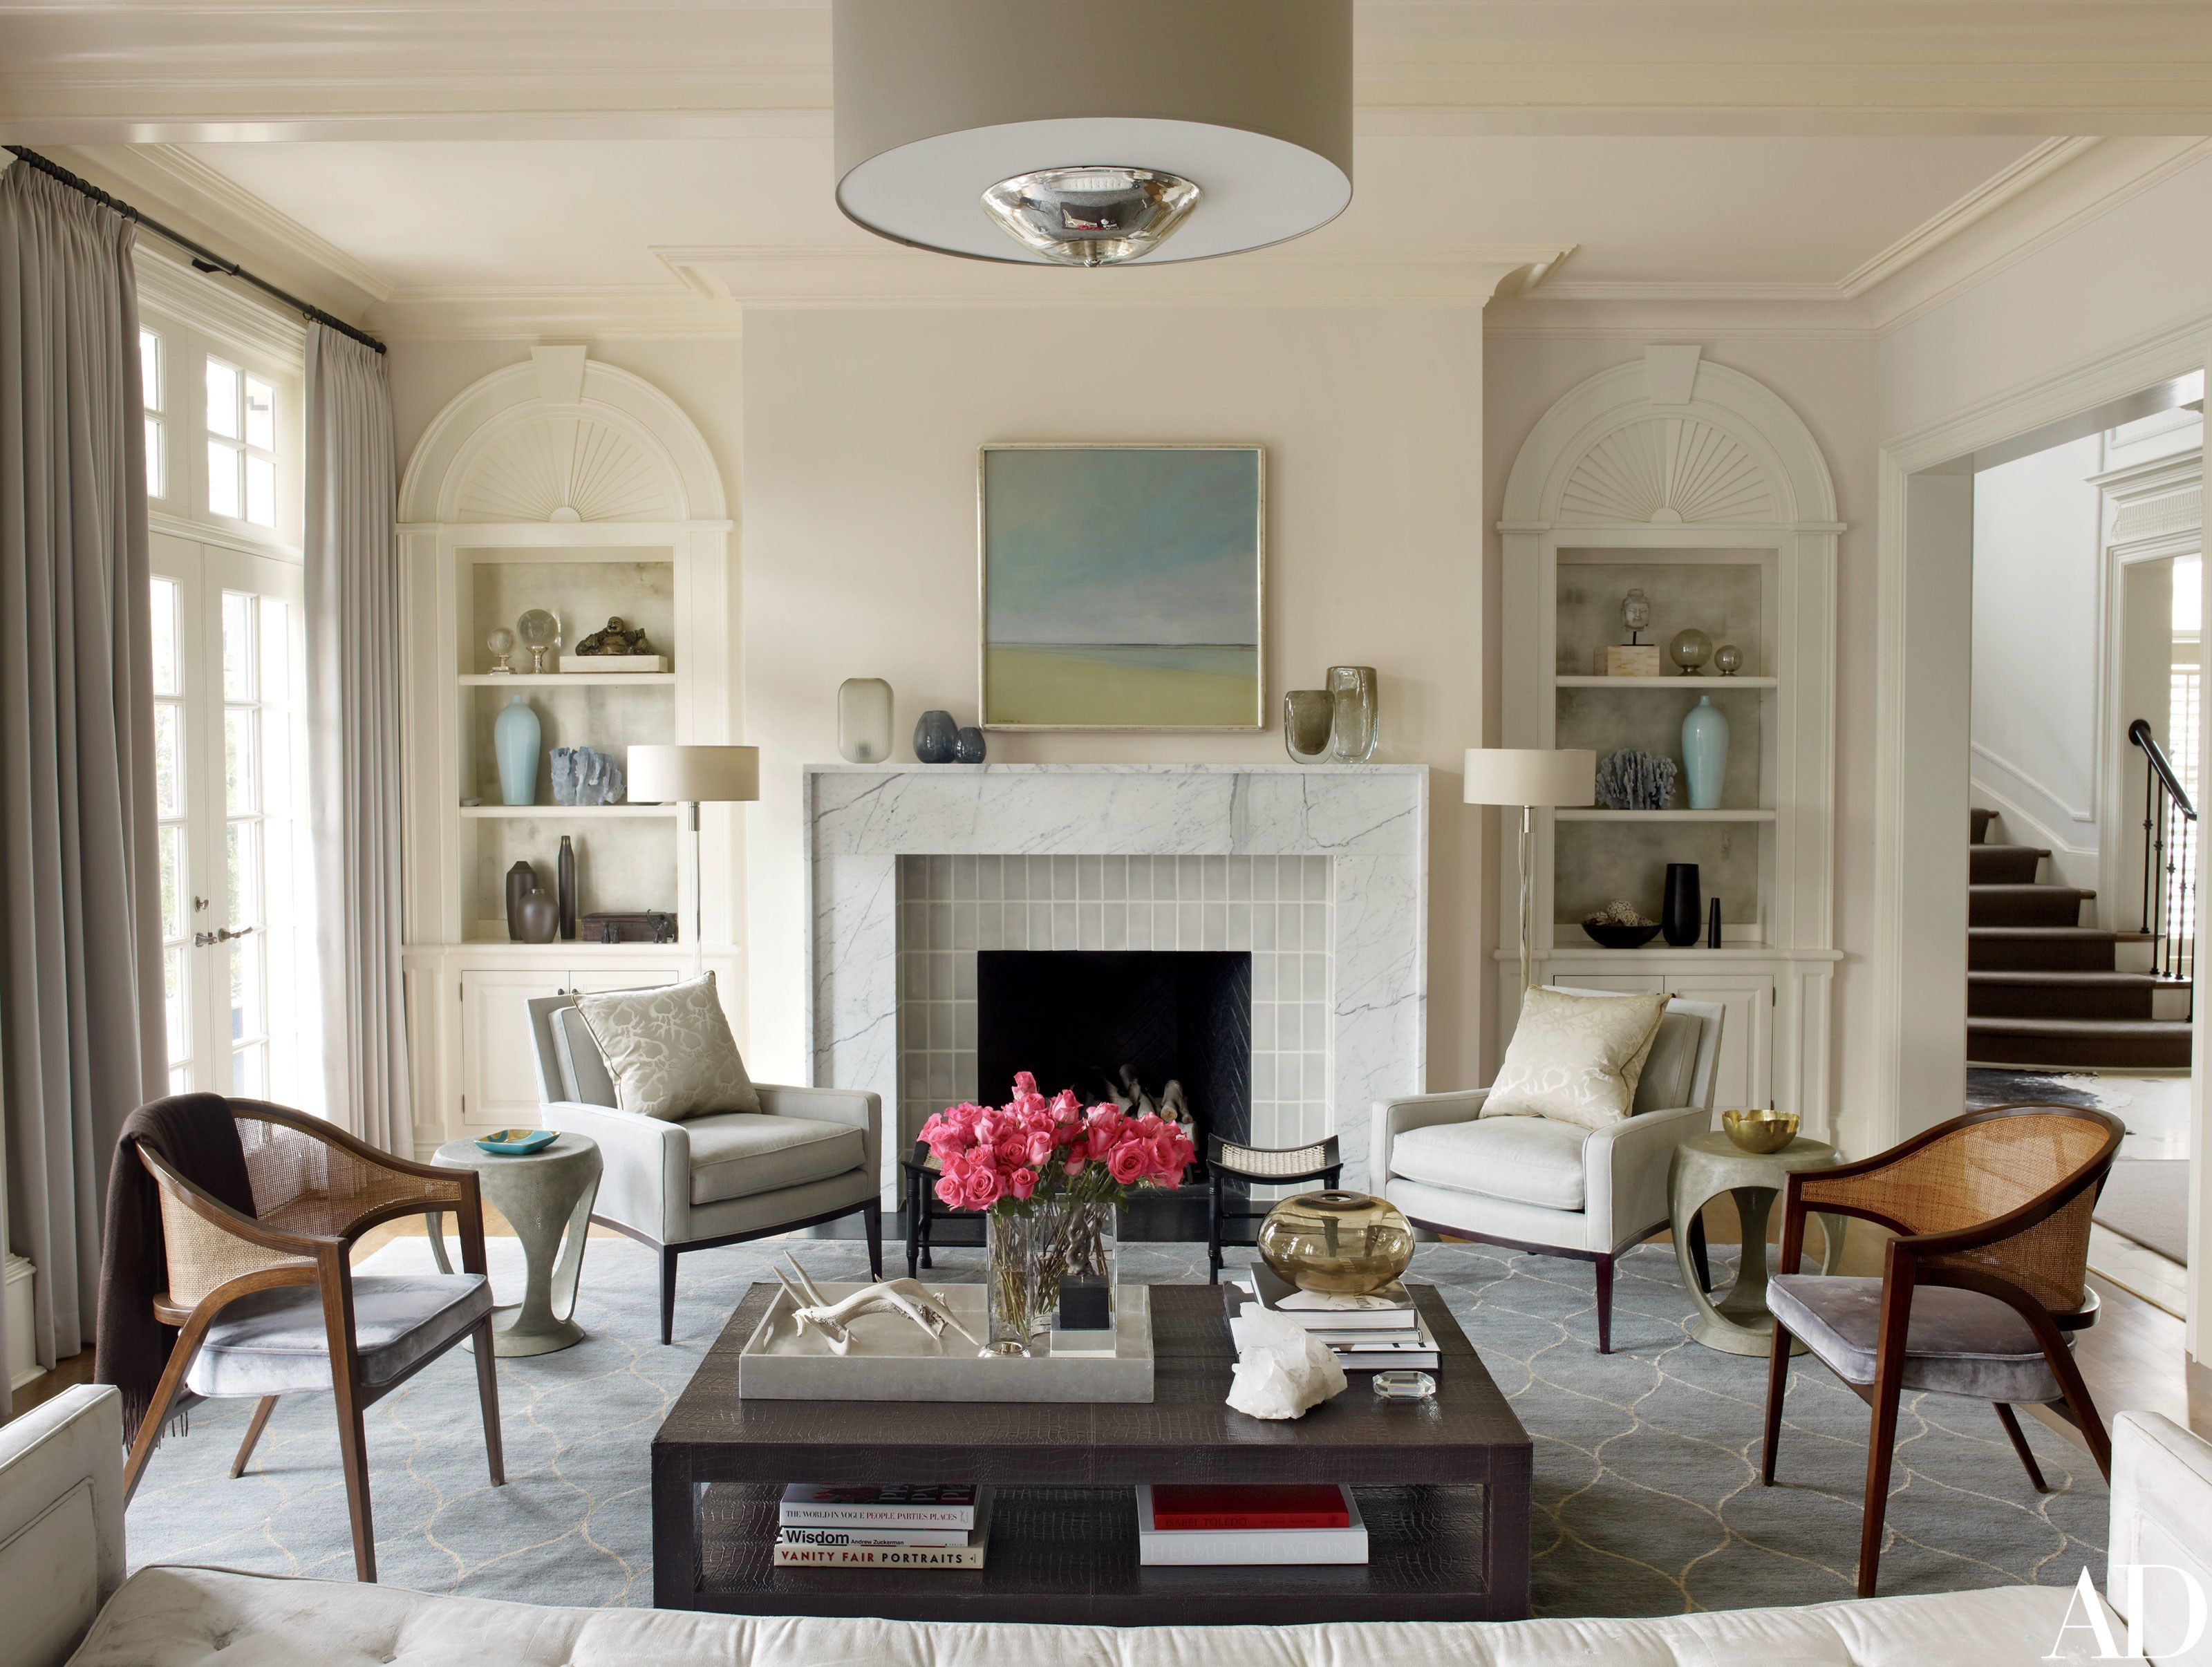 Russell Groves Gives a North Carolina Home a Dramatic Makeover ...